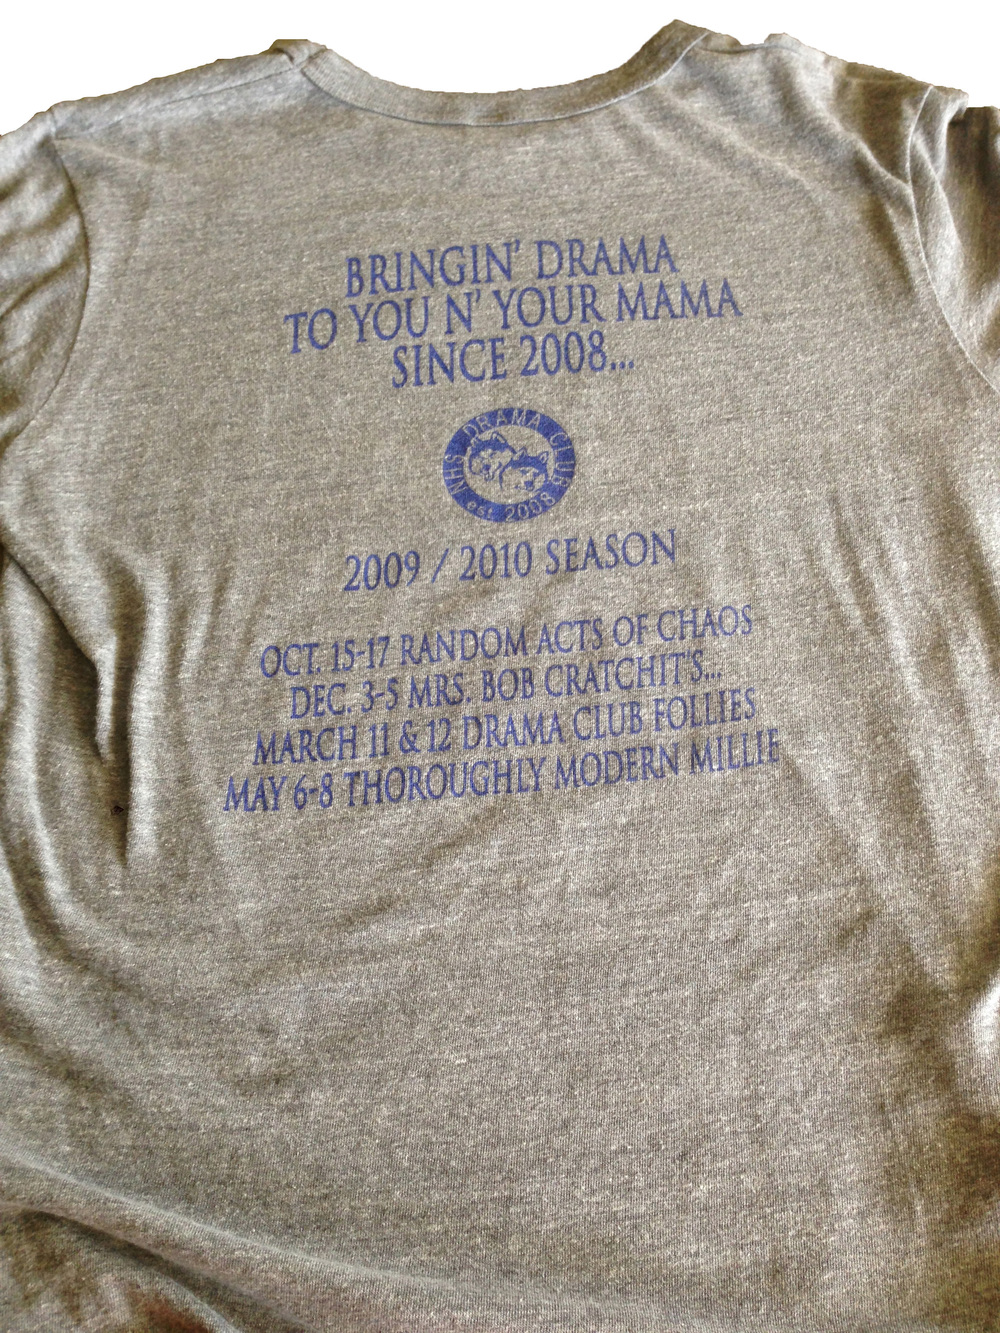 THE BACK OF OUR 2009/2010 DRAMA CLUB SHIRT